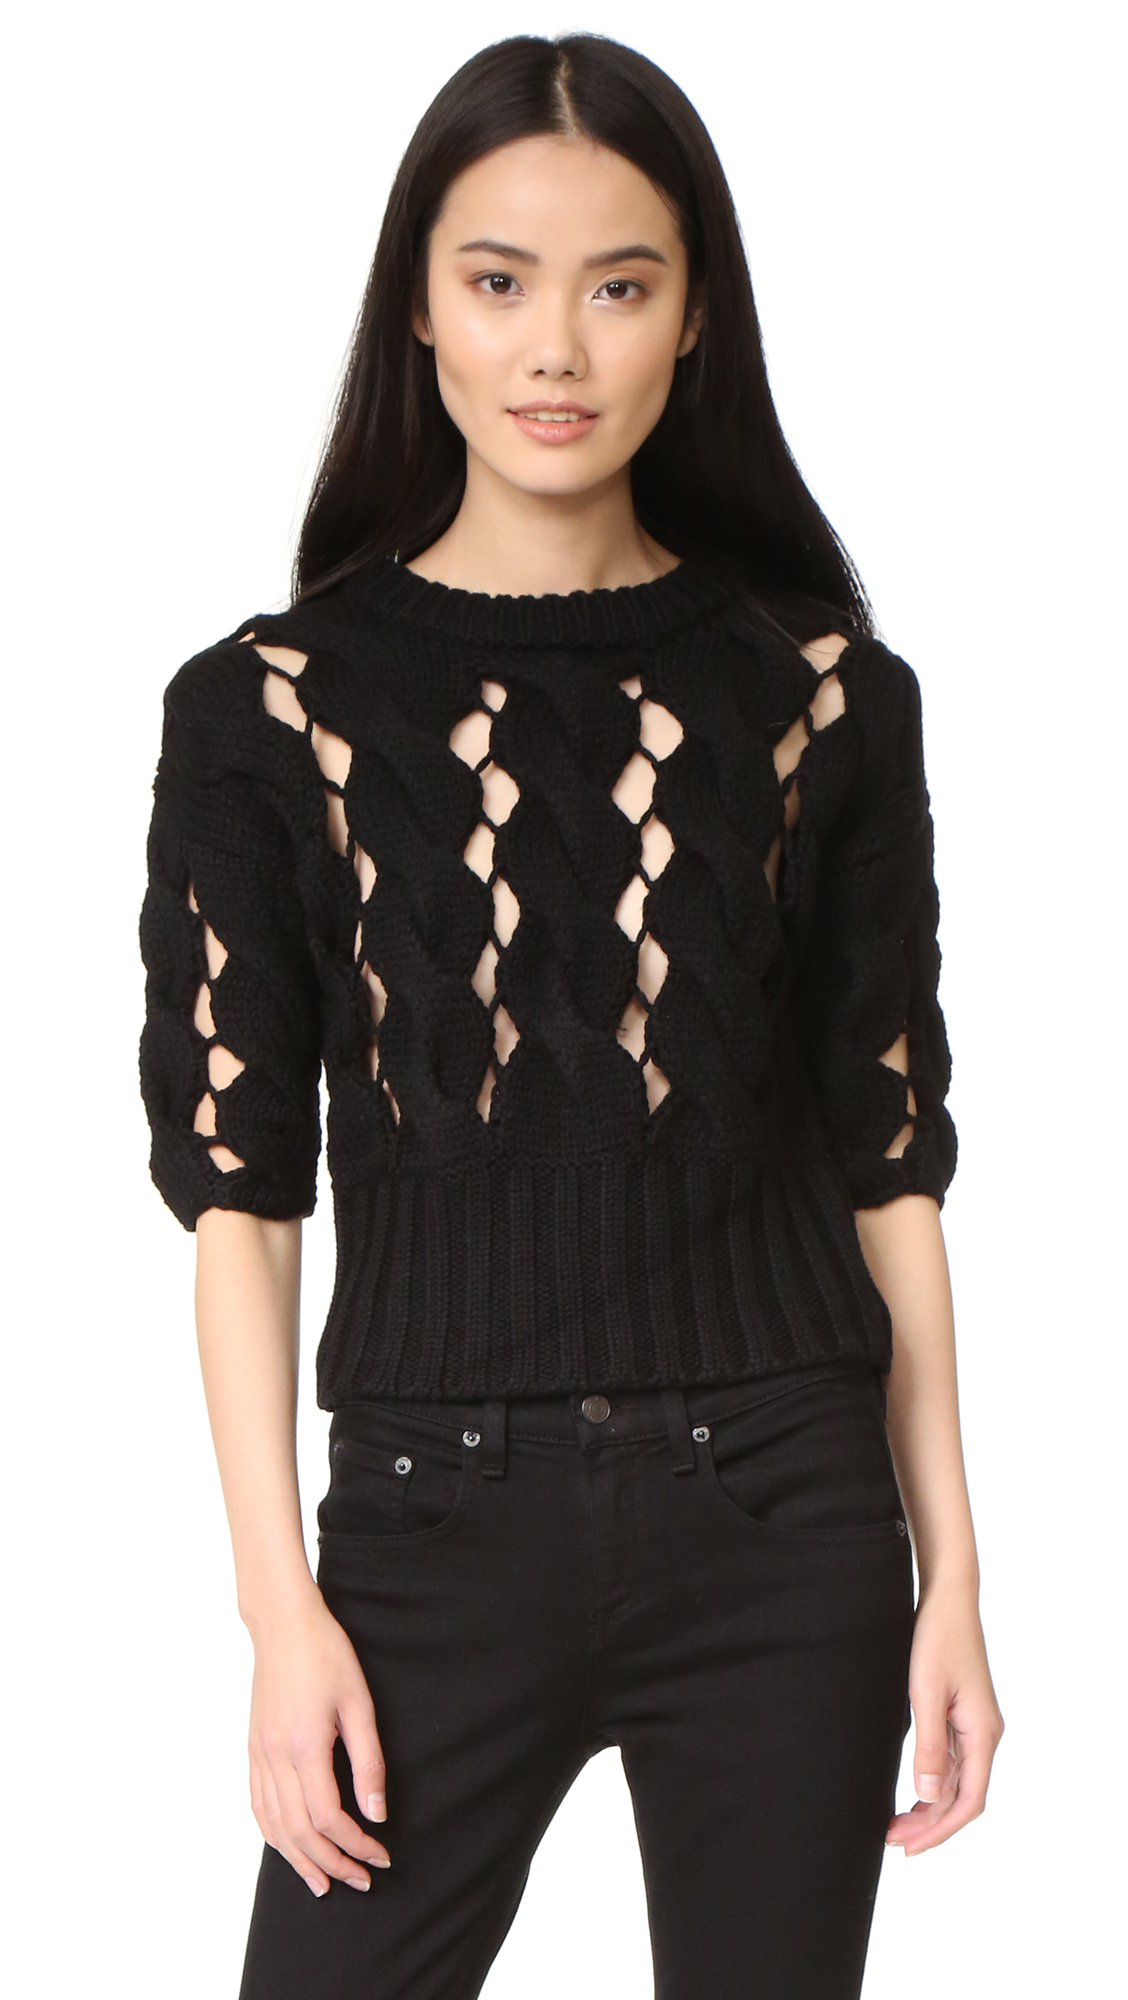 Dkny Cropped Sweater - Black at Shopbop